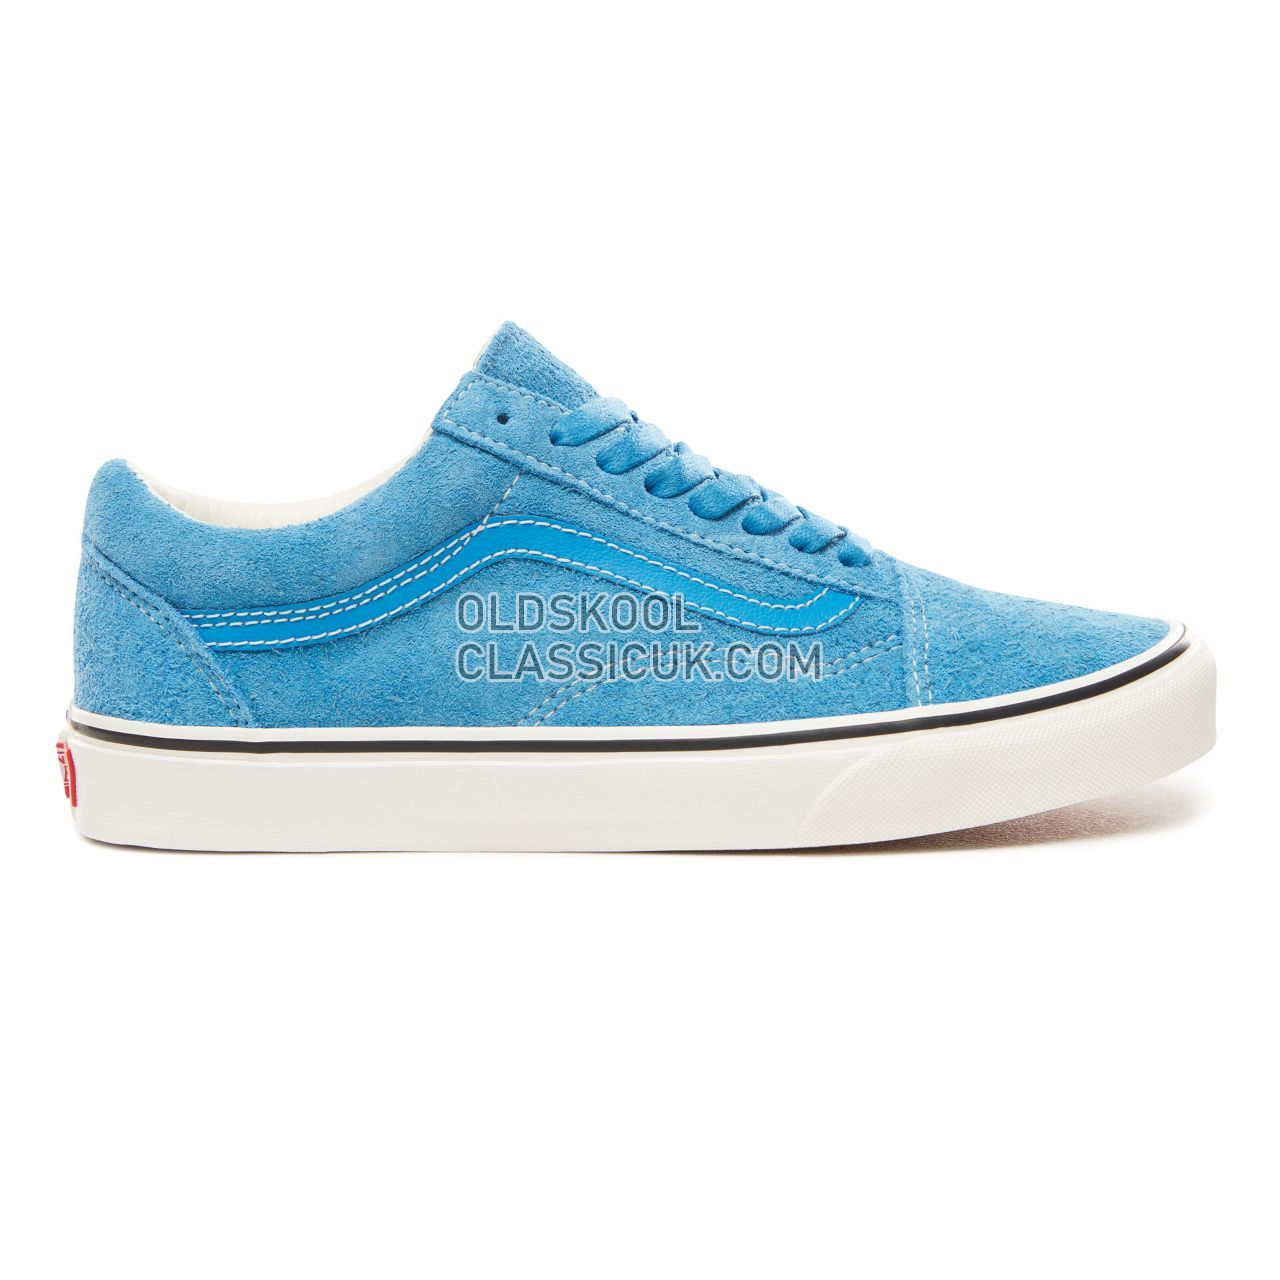 Vans Hairy Suede Old Skool Sneakers Mens Womens Unisex (Hairy Suede) Indigo Bunting/Snow White VN0A38G1UNH Shoes